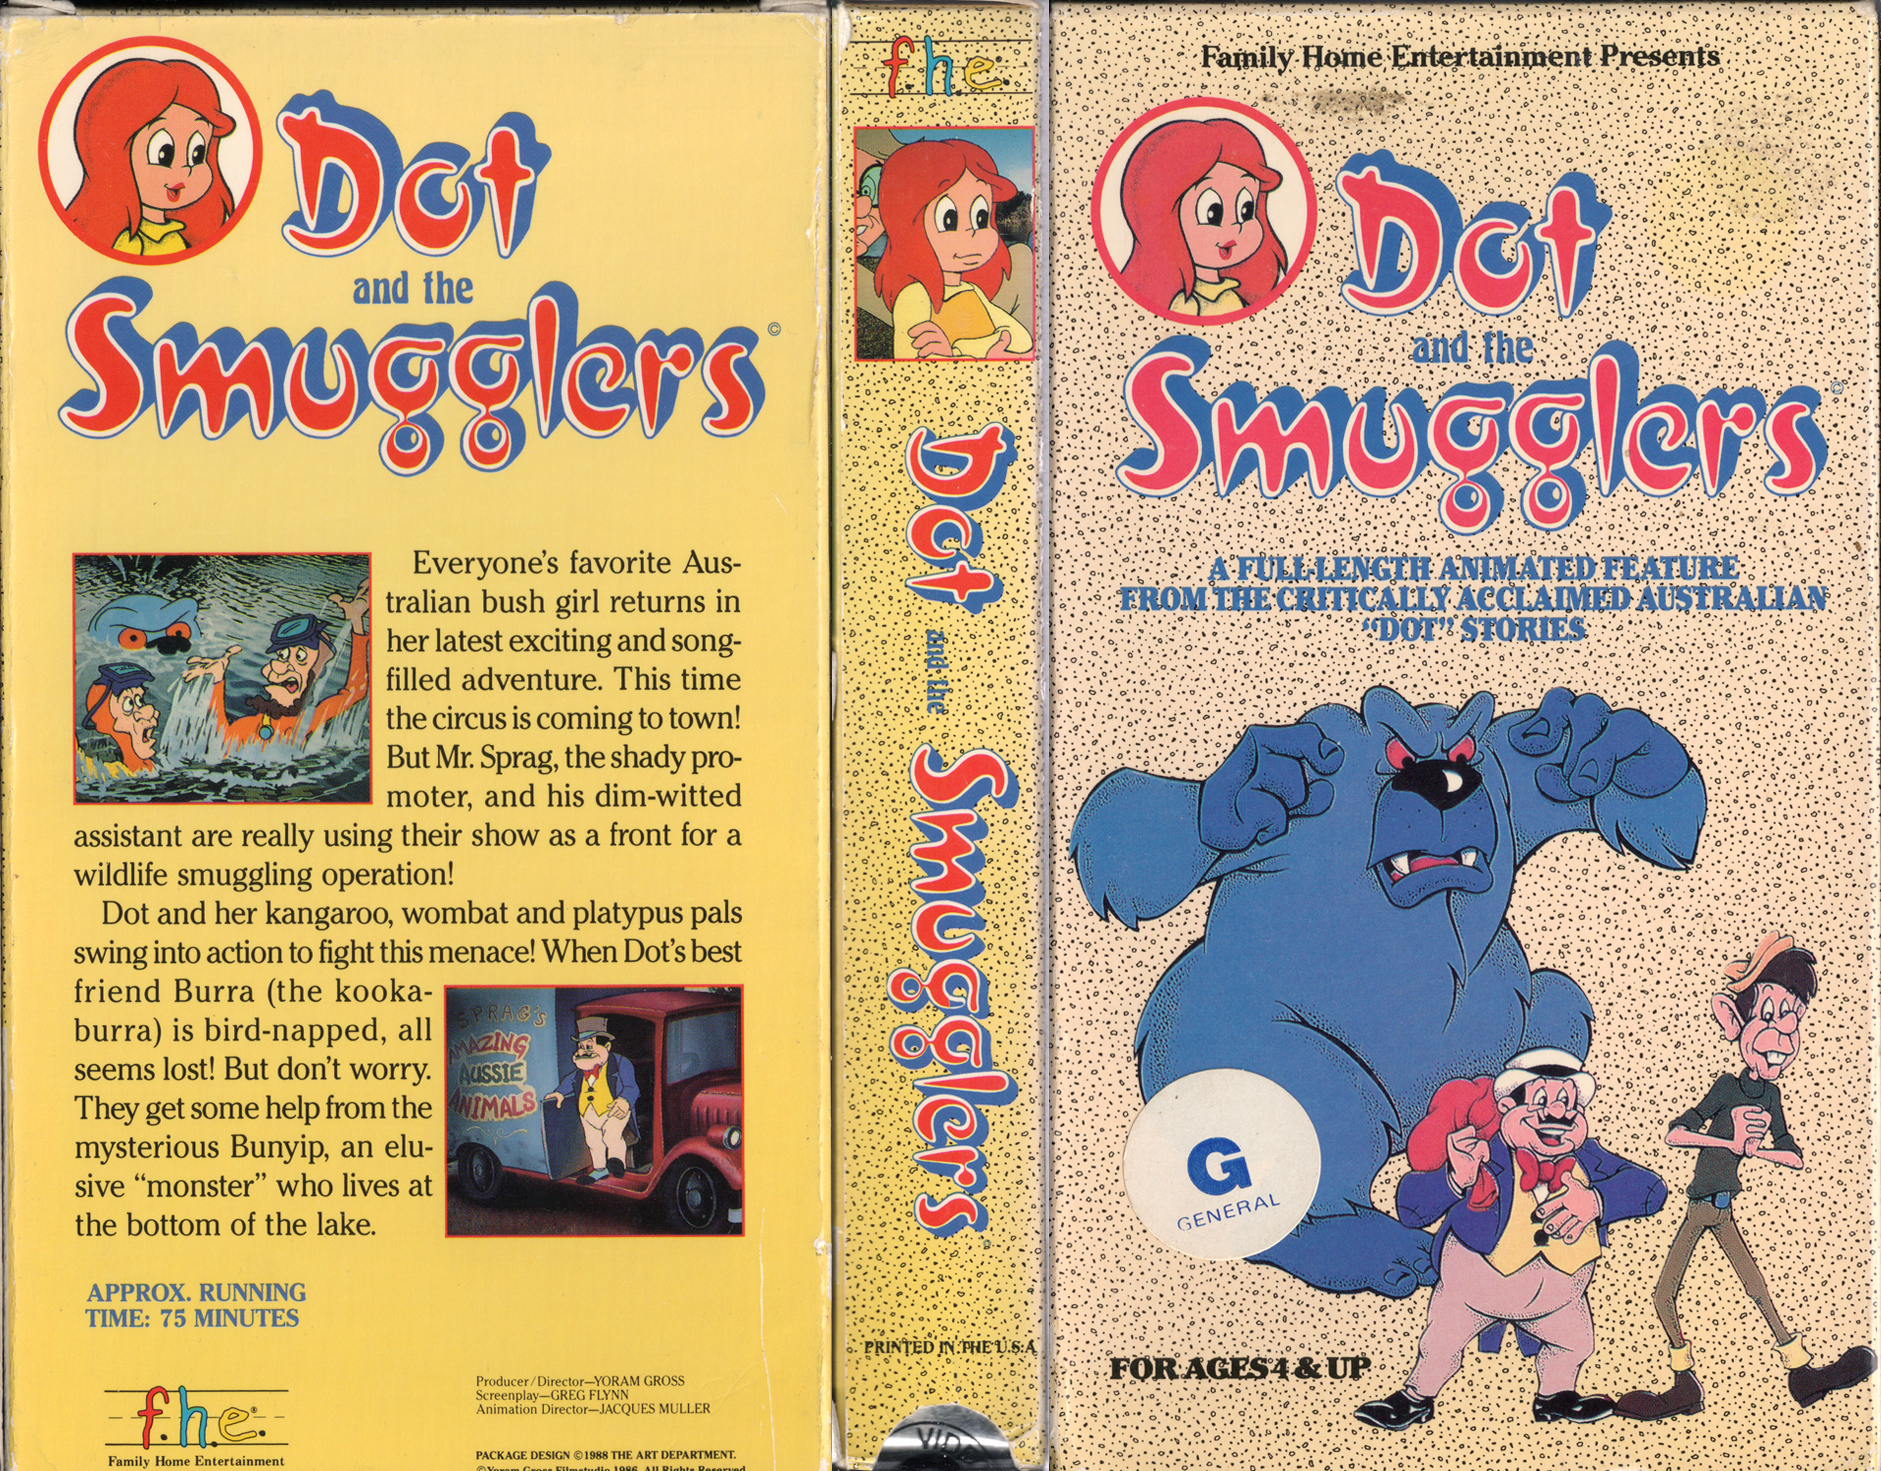 Dot and the Smugglers movie